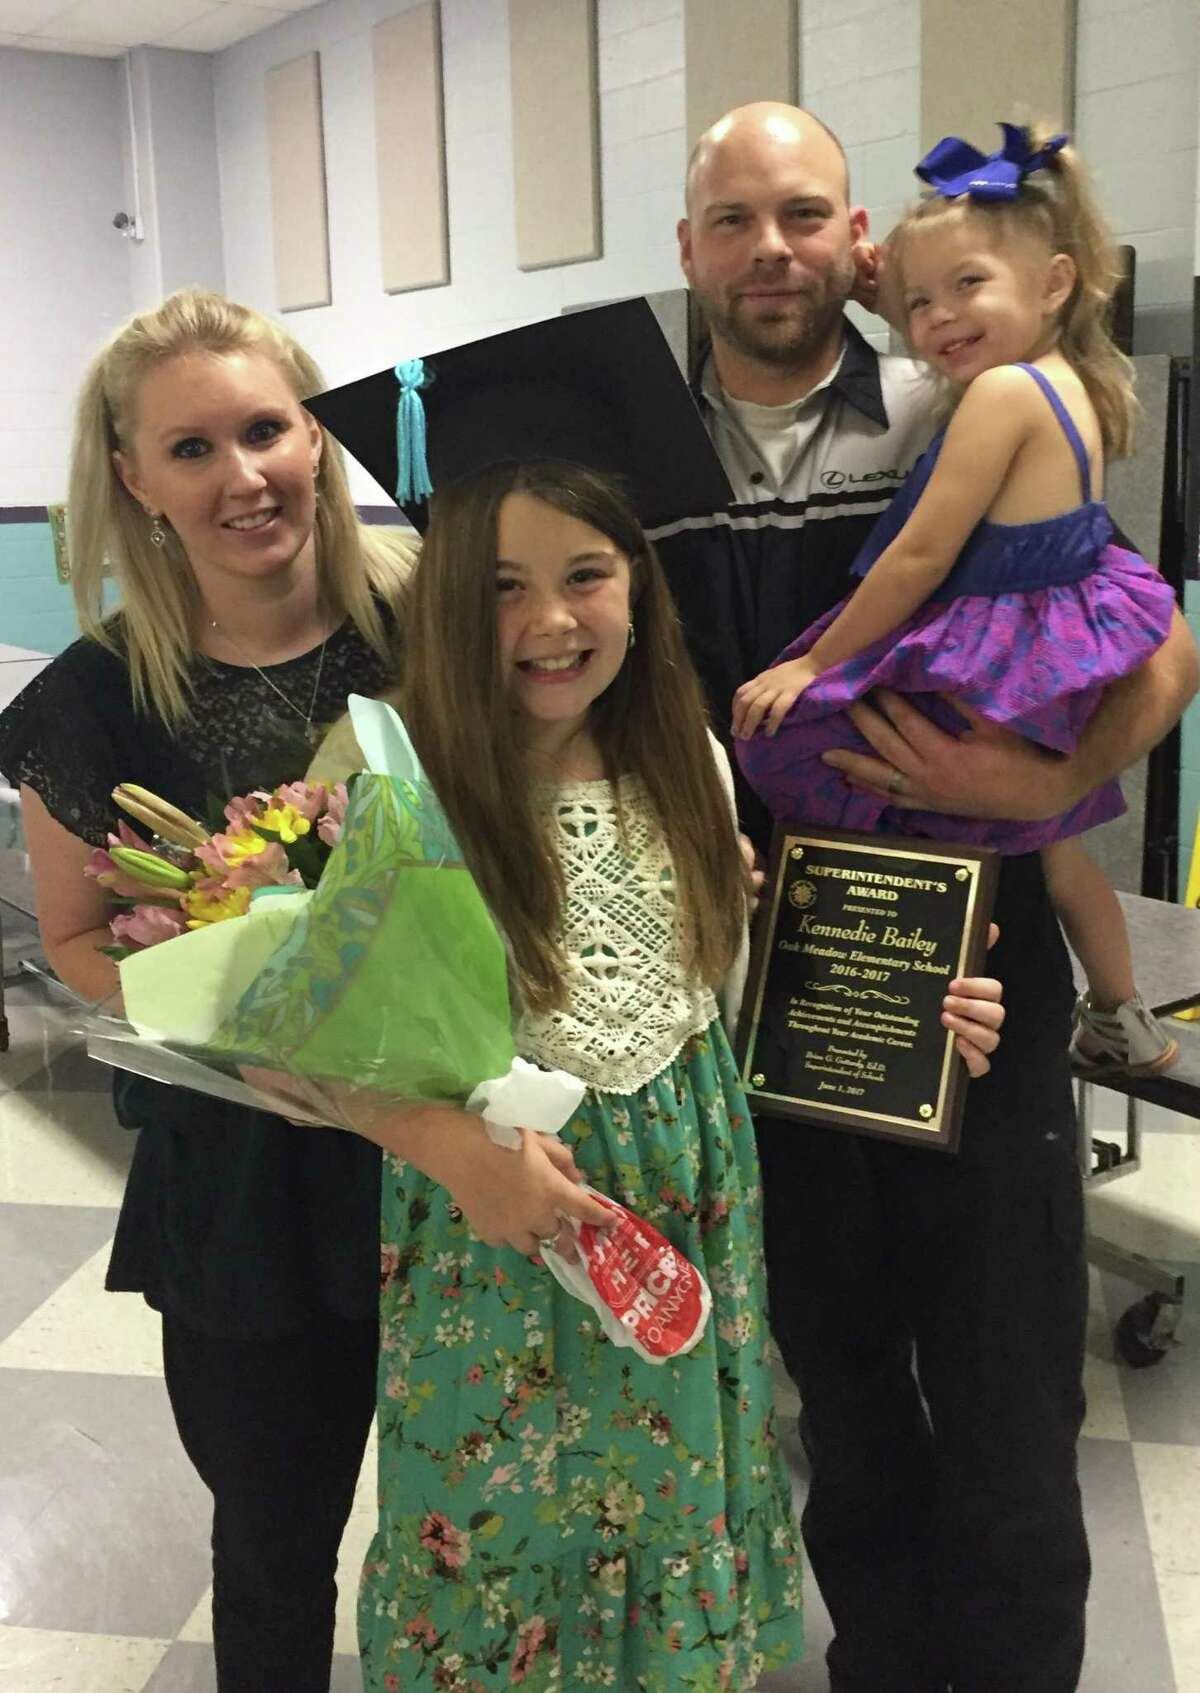 Kennedie Bailey poses with her mother, Lindsey Bendele, her stepfather, Chris Bendele, and her sister, Presley, 4, before starting chemotherapy over the summer. Kennedie was diagnosed with rhabdomyosarcoma, a form of cancer that develops from connective tissues in the body including, muscles, bones, joints and fat.